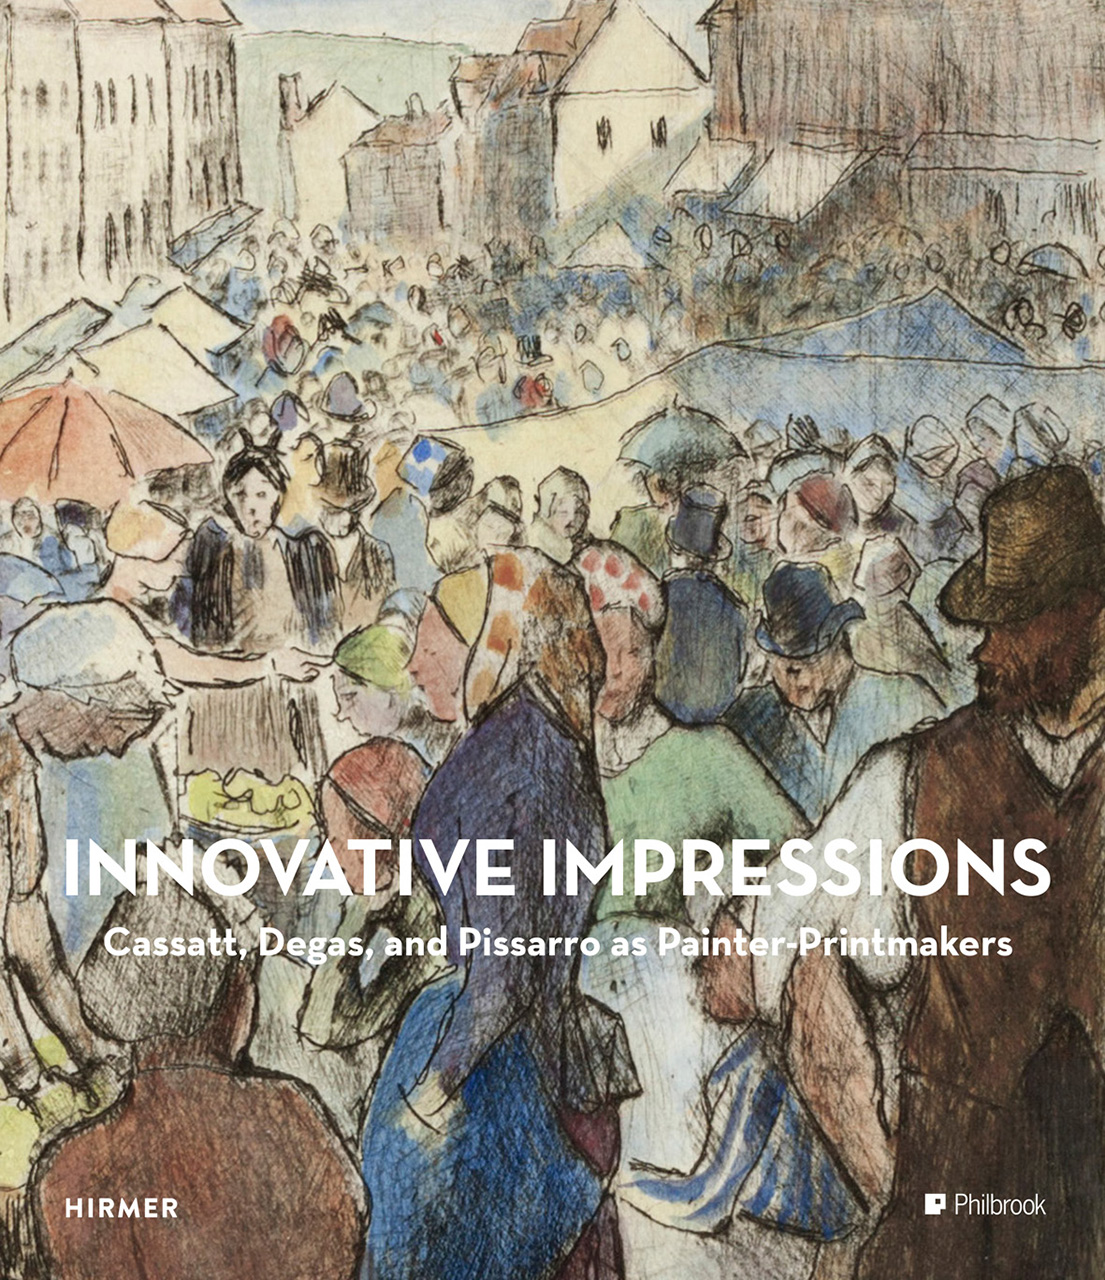 Innovative Impressions: Prints by Cassatt, Degas, and Pissarro